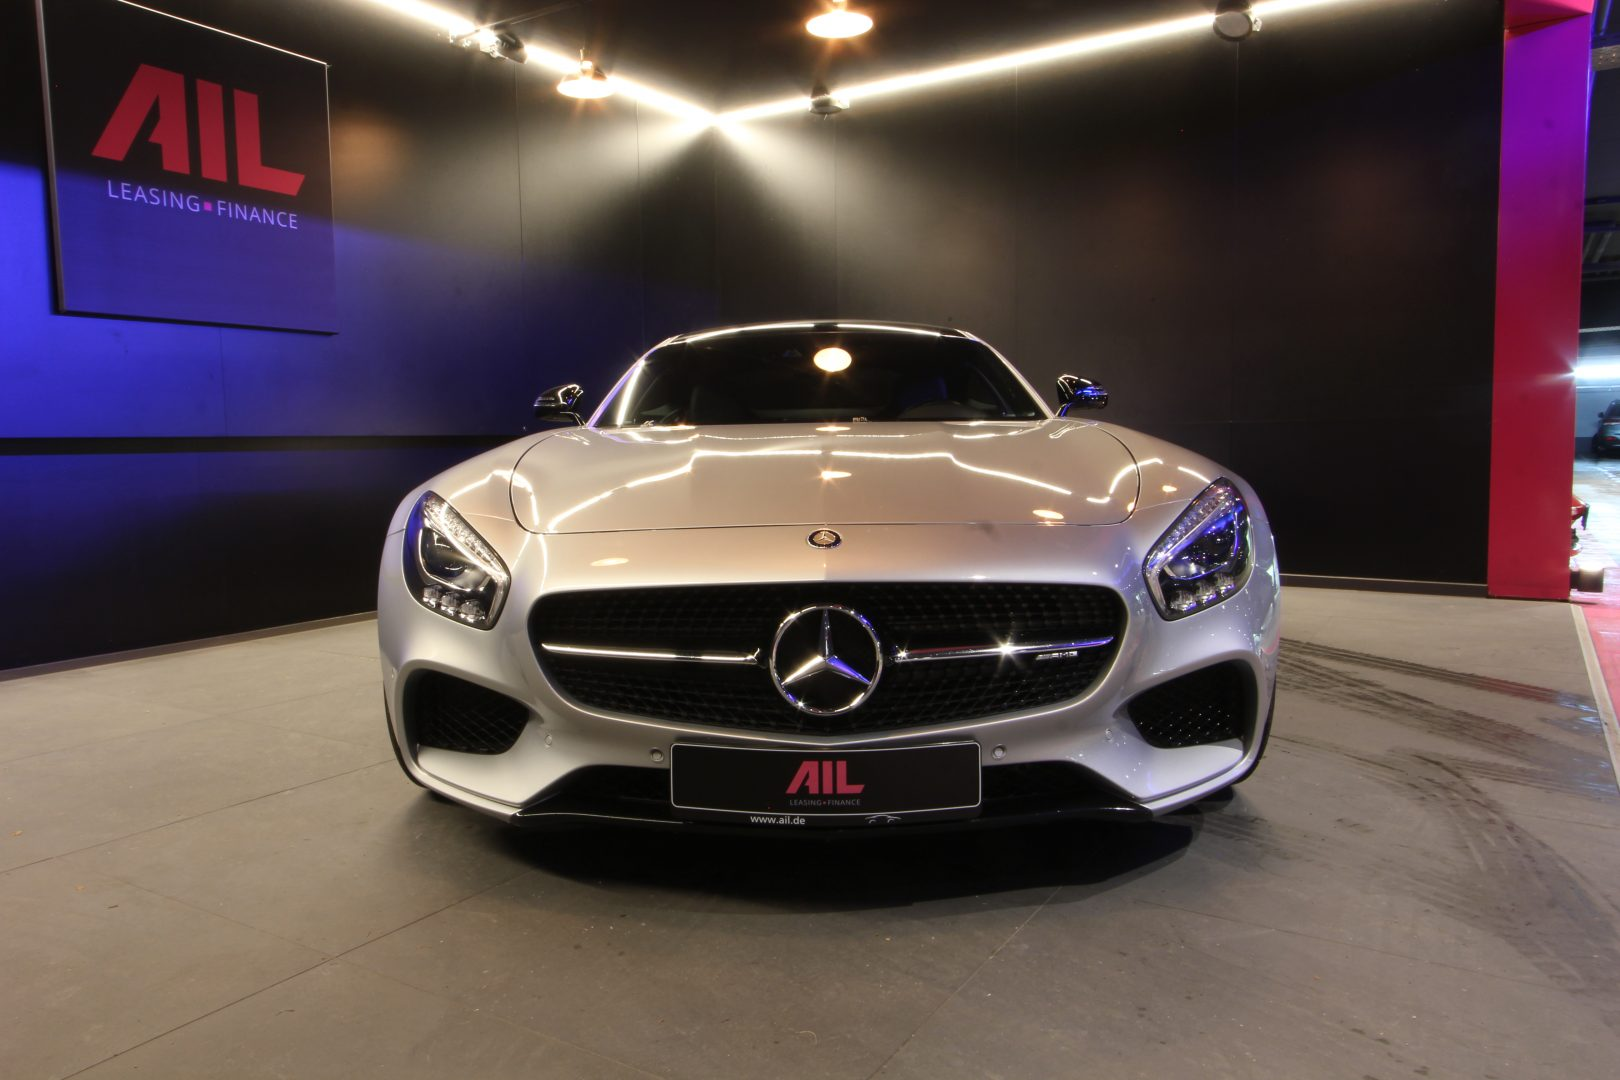 AIL Mercedes-Benz AMG GT S Coupe 12